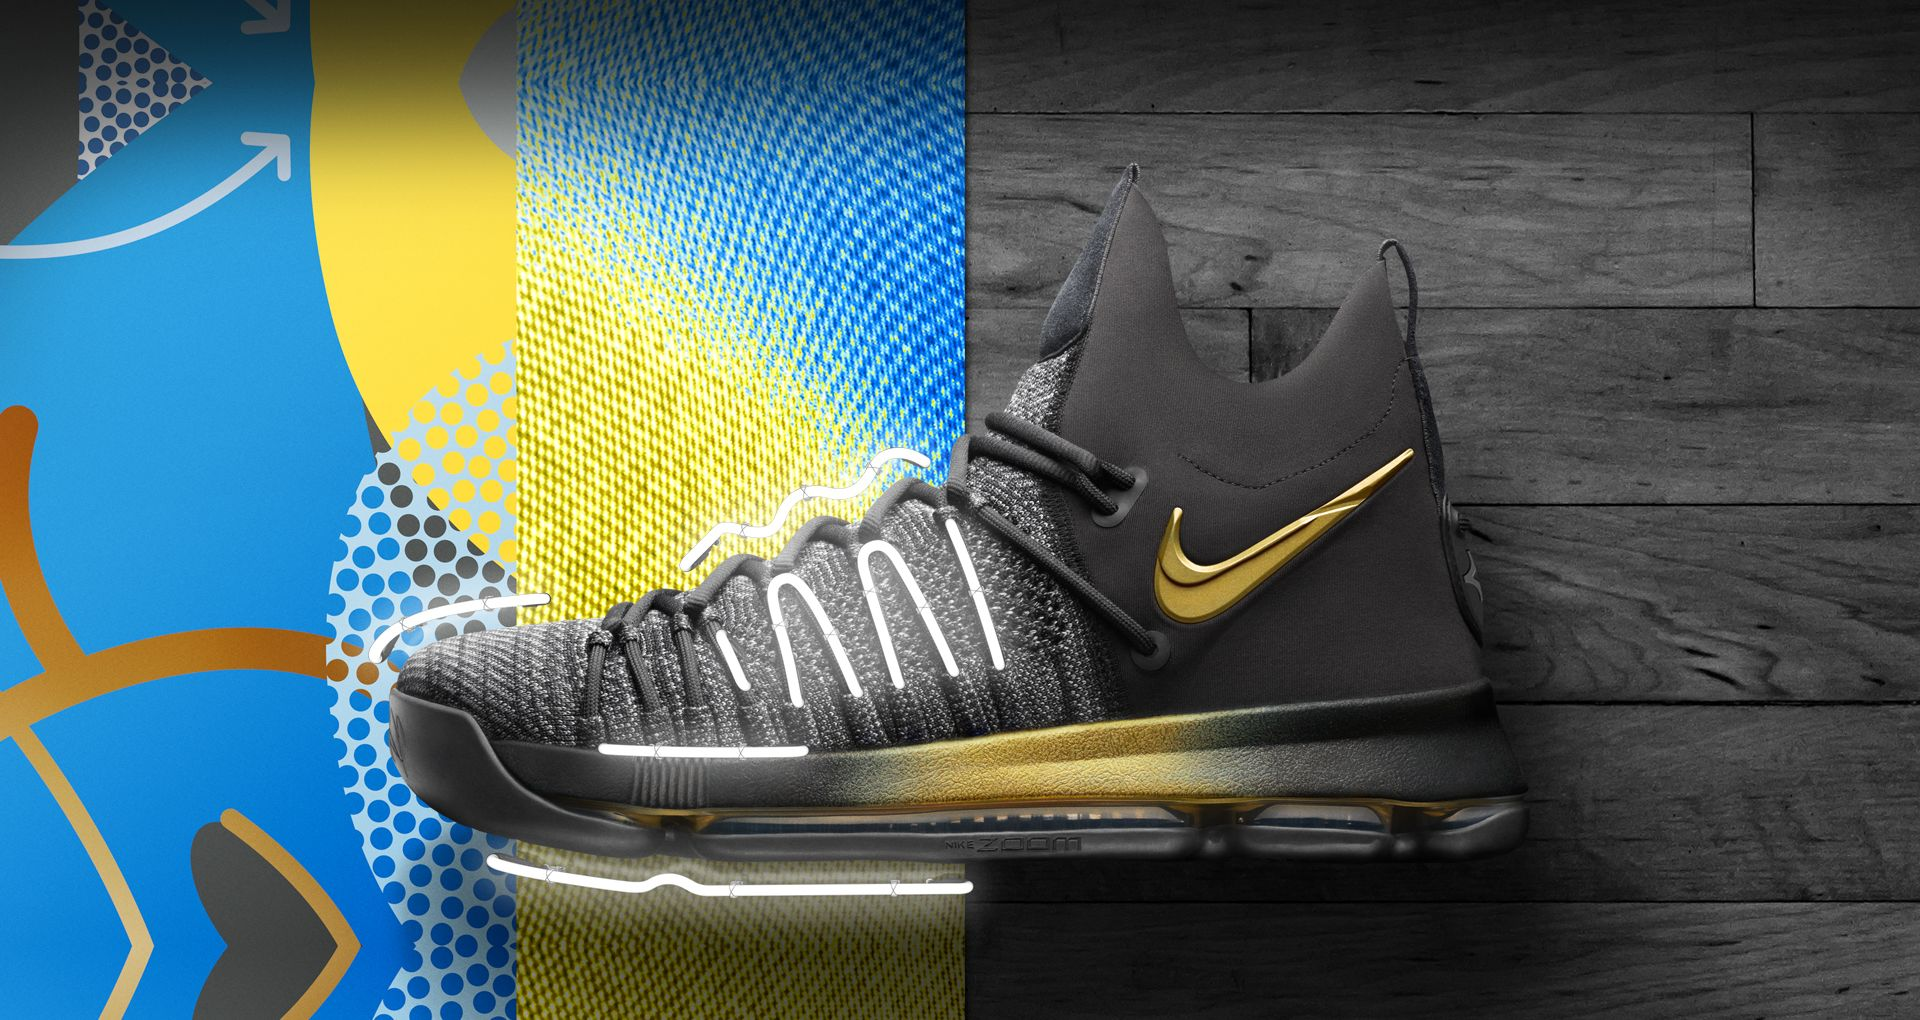 official photos 50f30 df76a Nike Zoom KD 9 Elite 'Flip The Switch'. Nike+ SNKRS